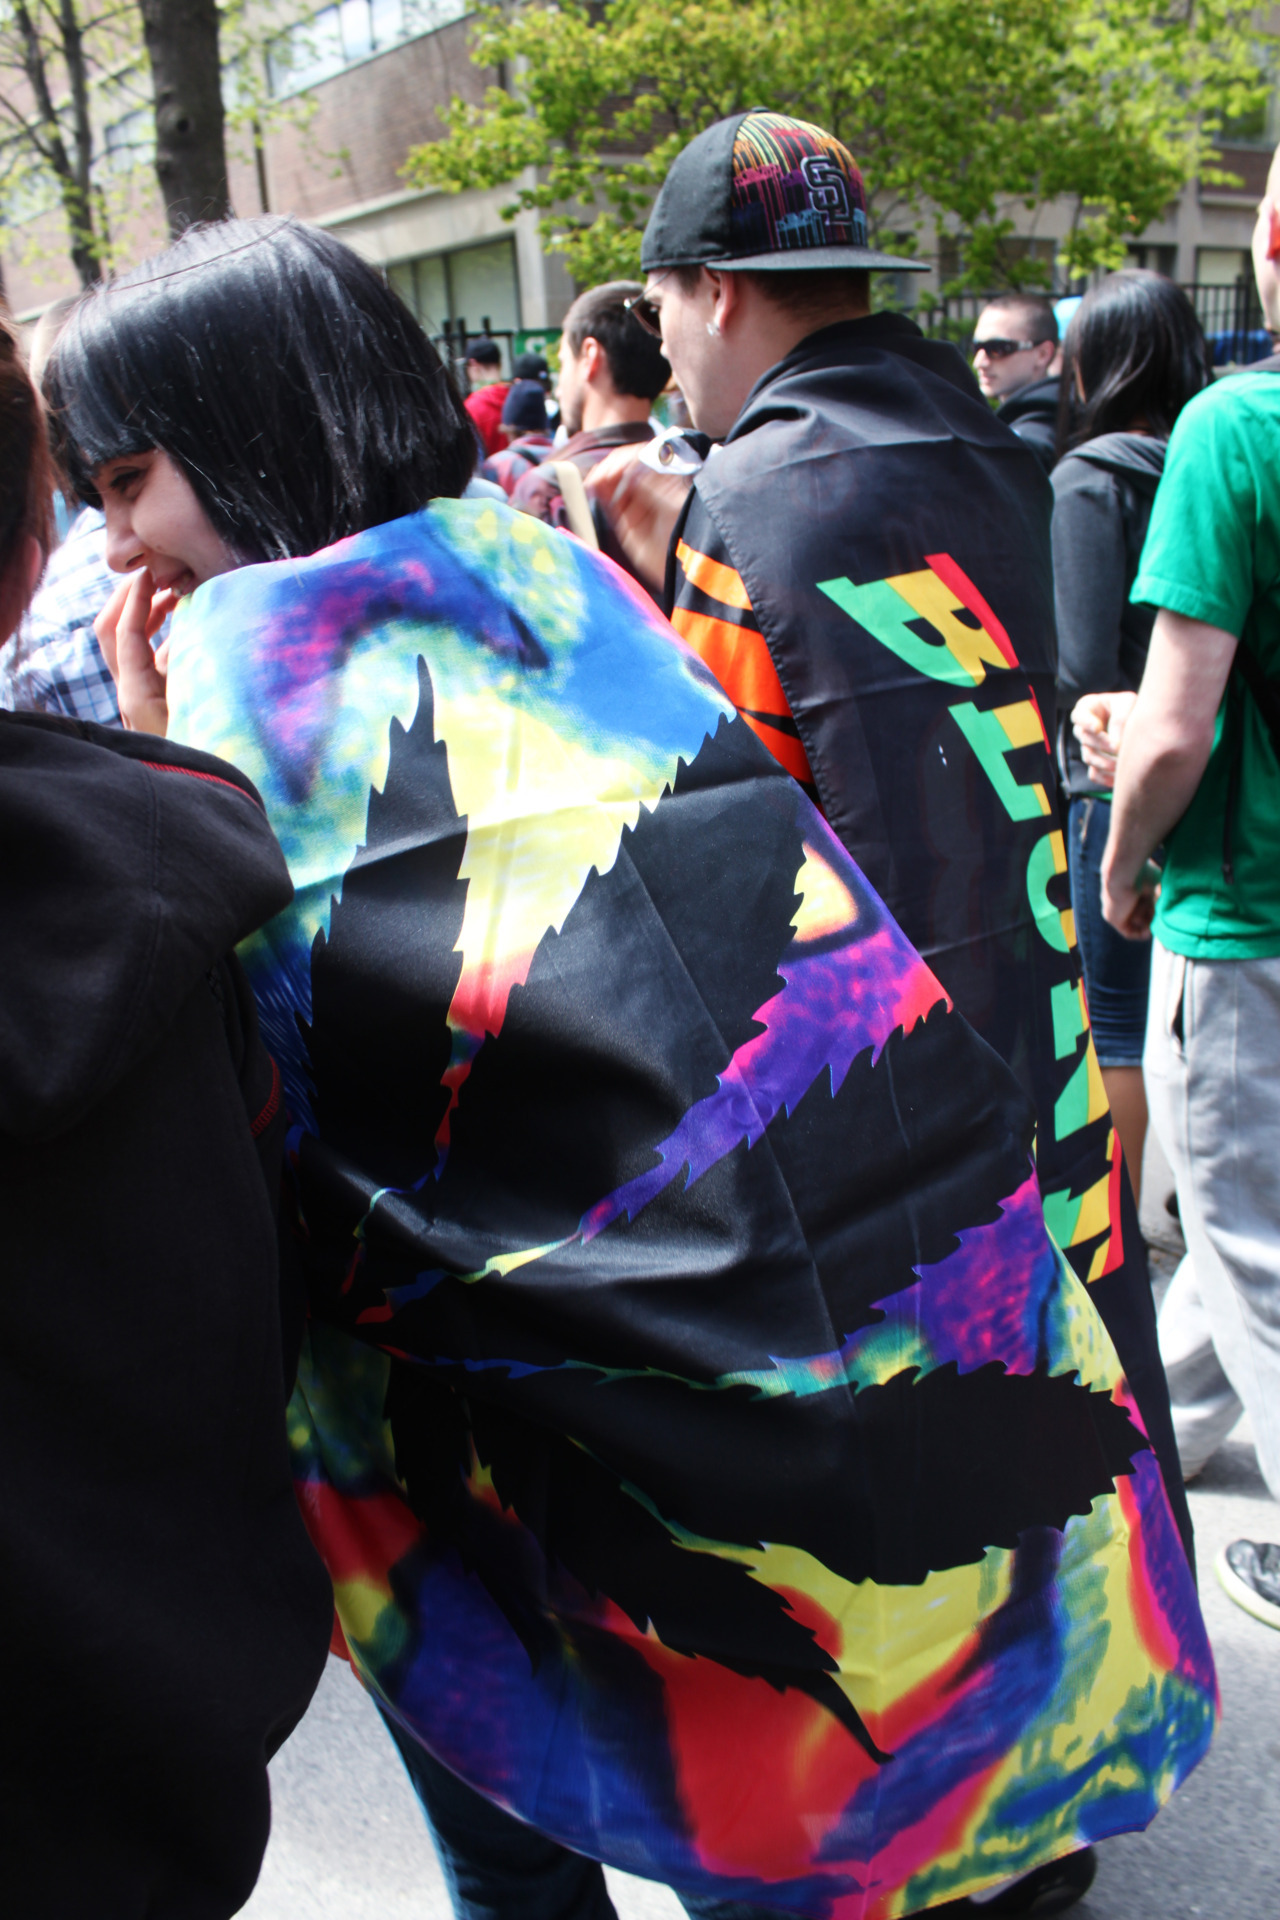 Toronto Freedom Festival (Marijuana March) 2012